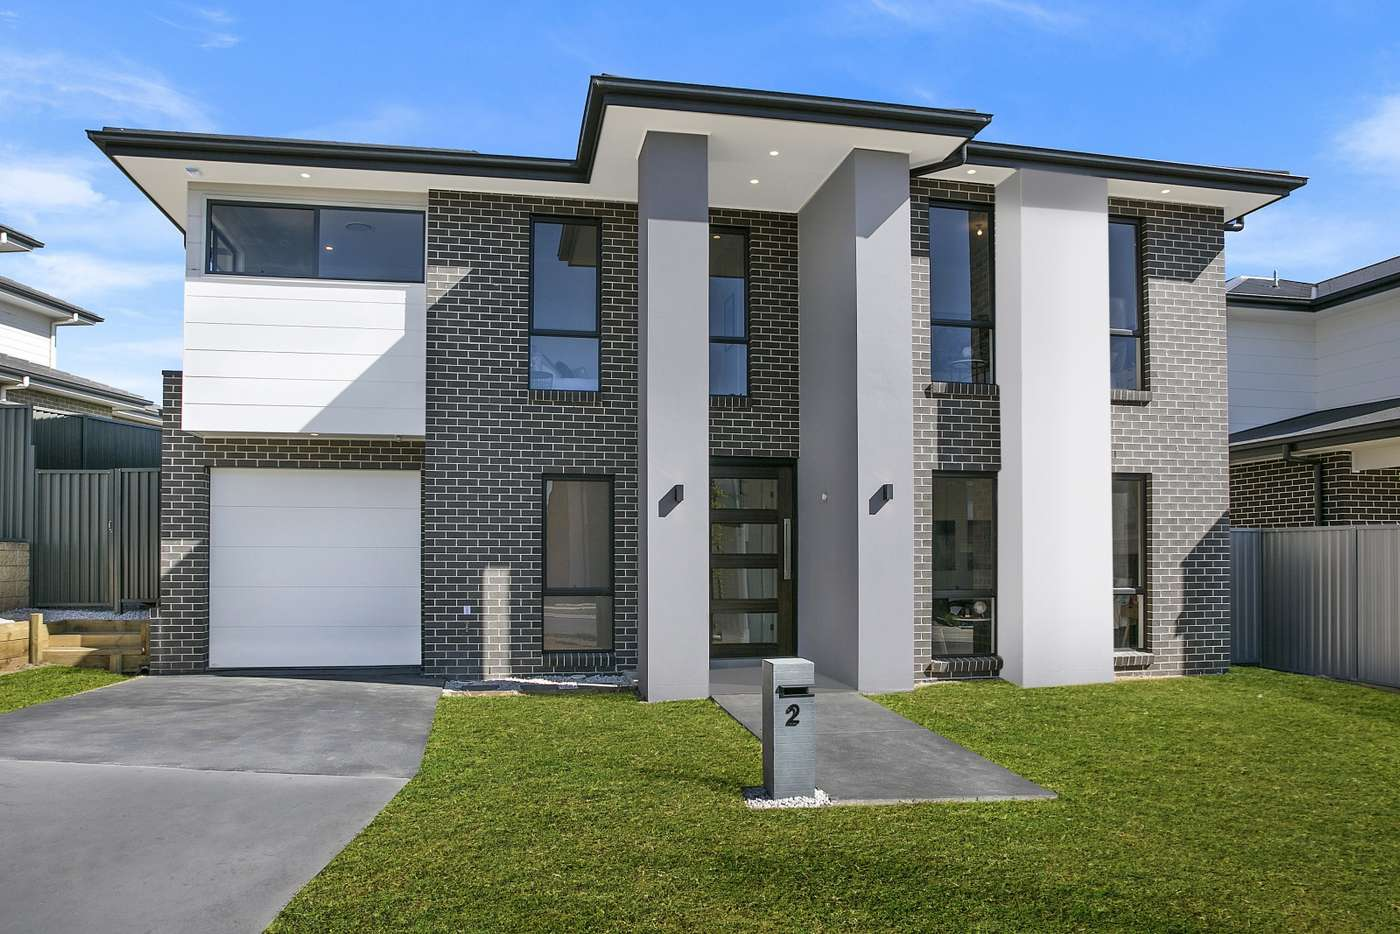 Main view of Homely house listing, 2 Sando Street, Oran Park NSW 2570